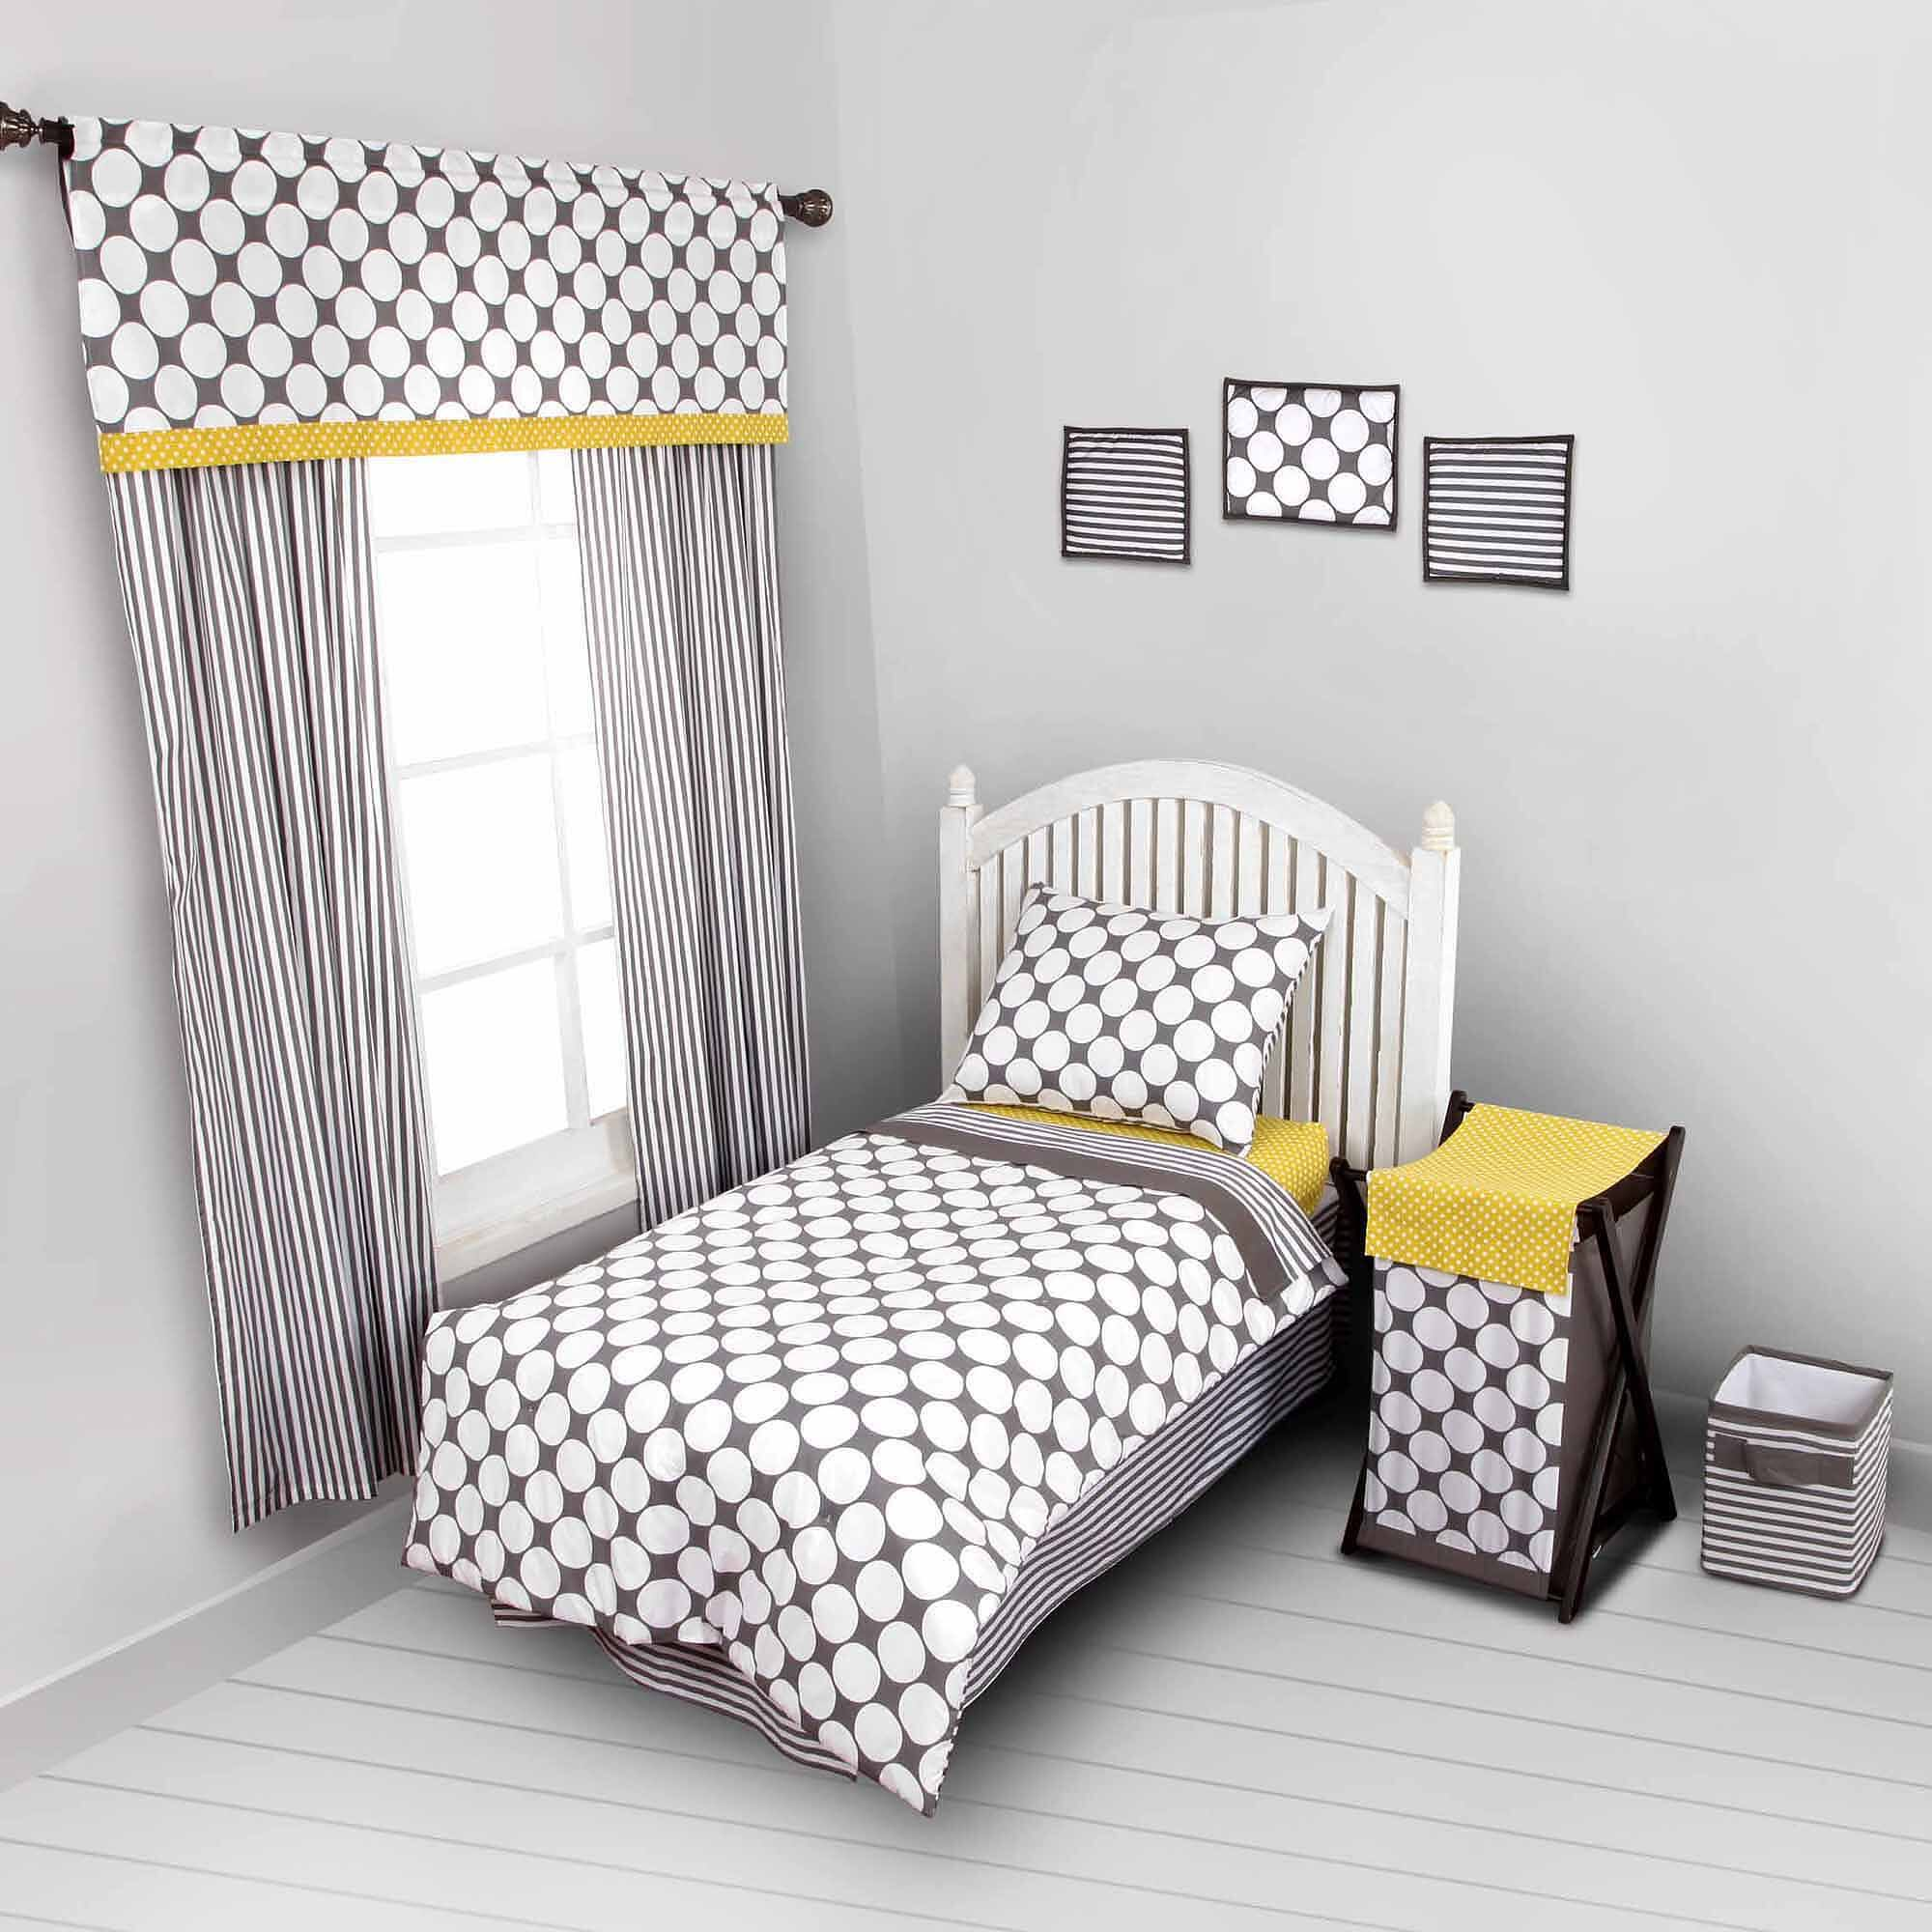 Bacati - Dots/pin Stripes Grey/Yellow 4 Pc Toddler Bedding Set $19.99 - Walmart.com